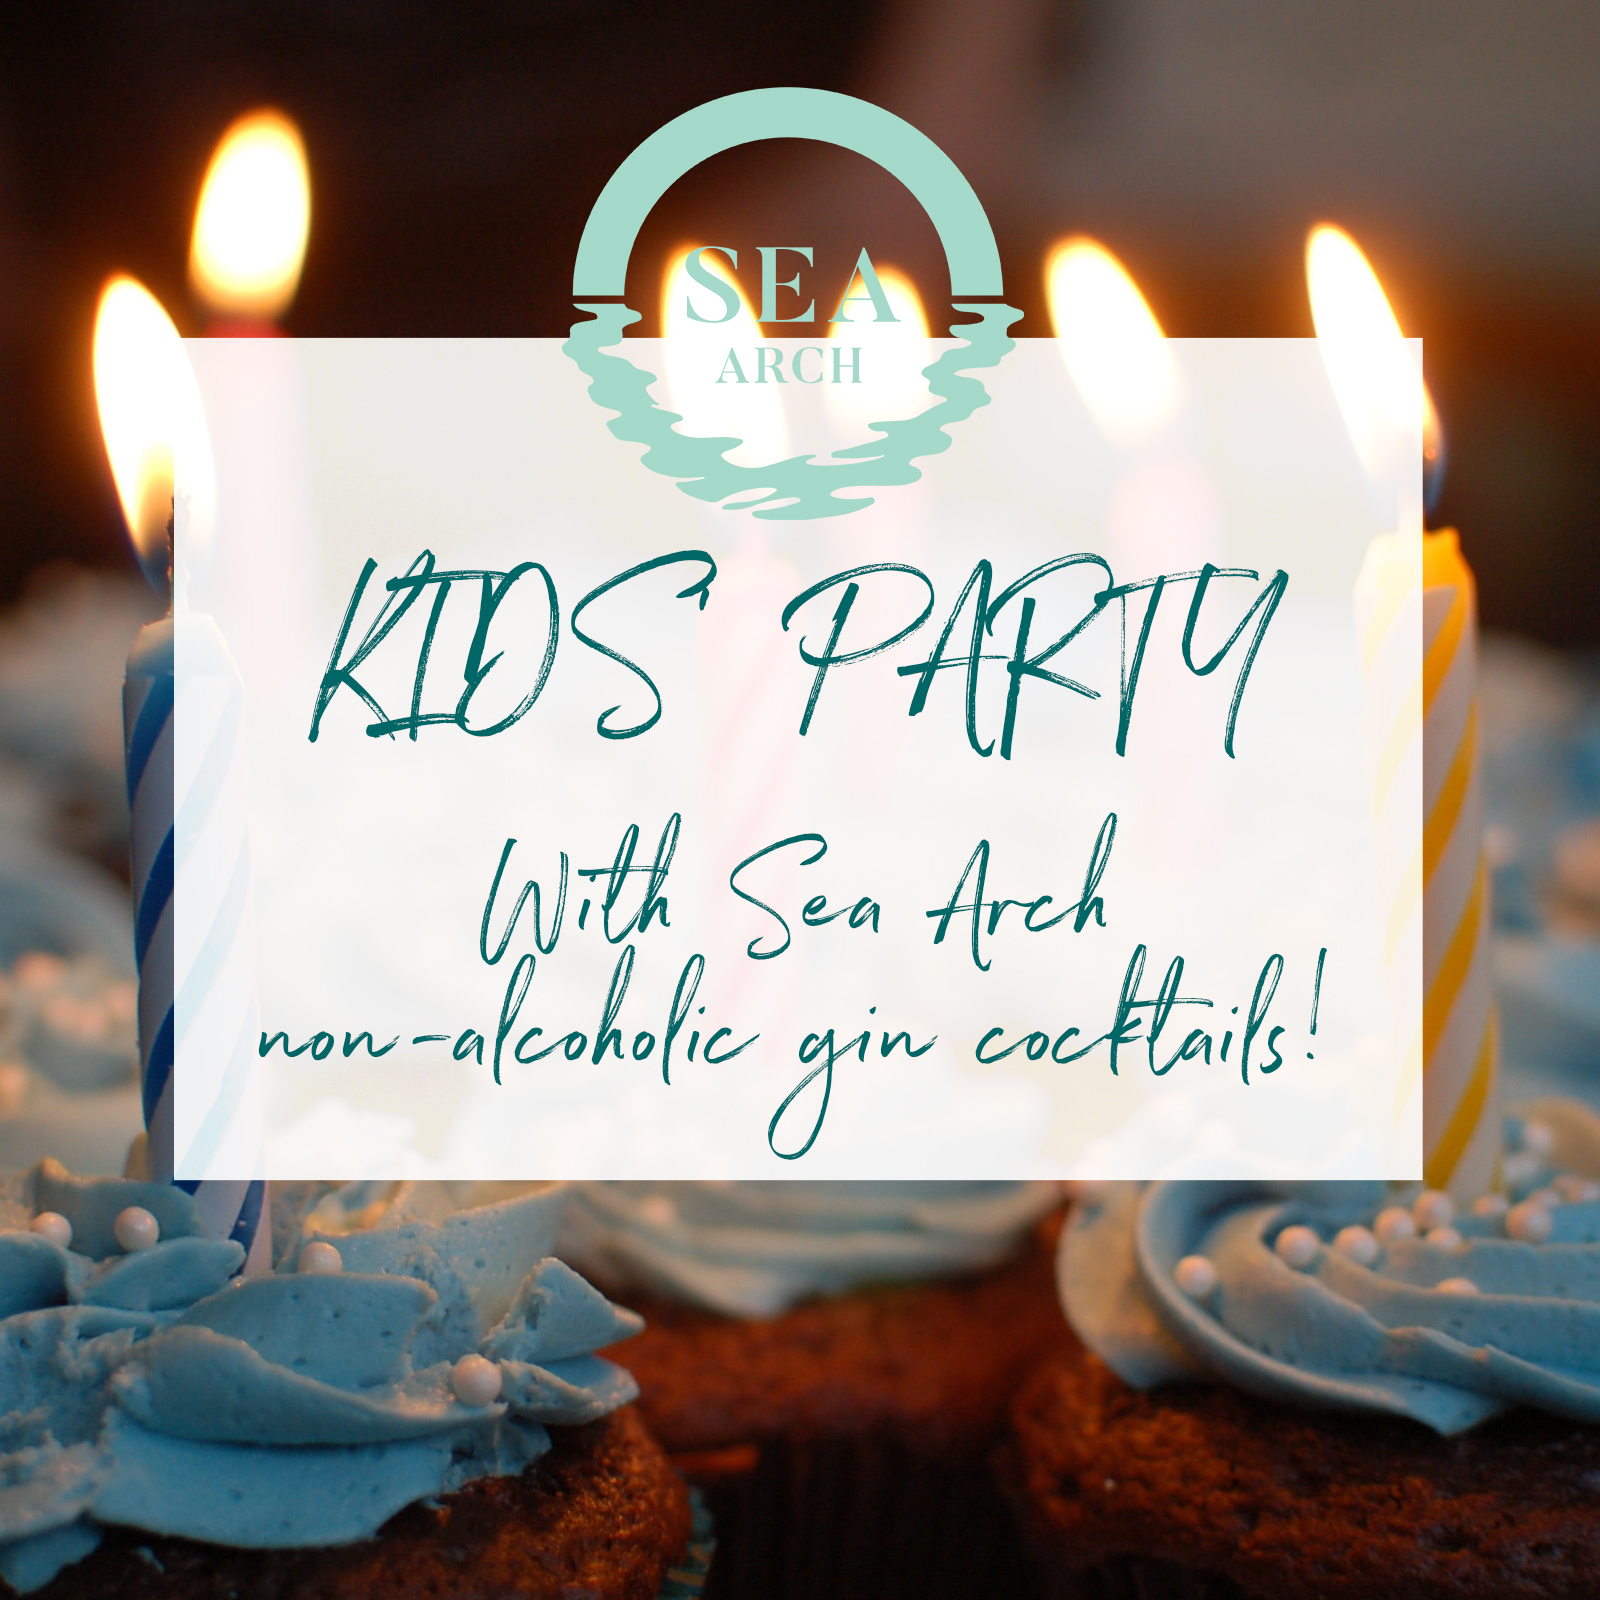 Kids+party+with+delicious+Sea+Arch+non alcoholic+gin+cocktails?format=original